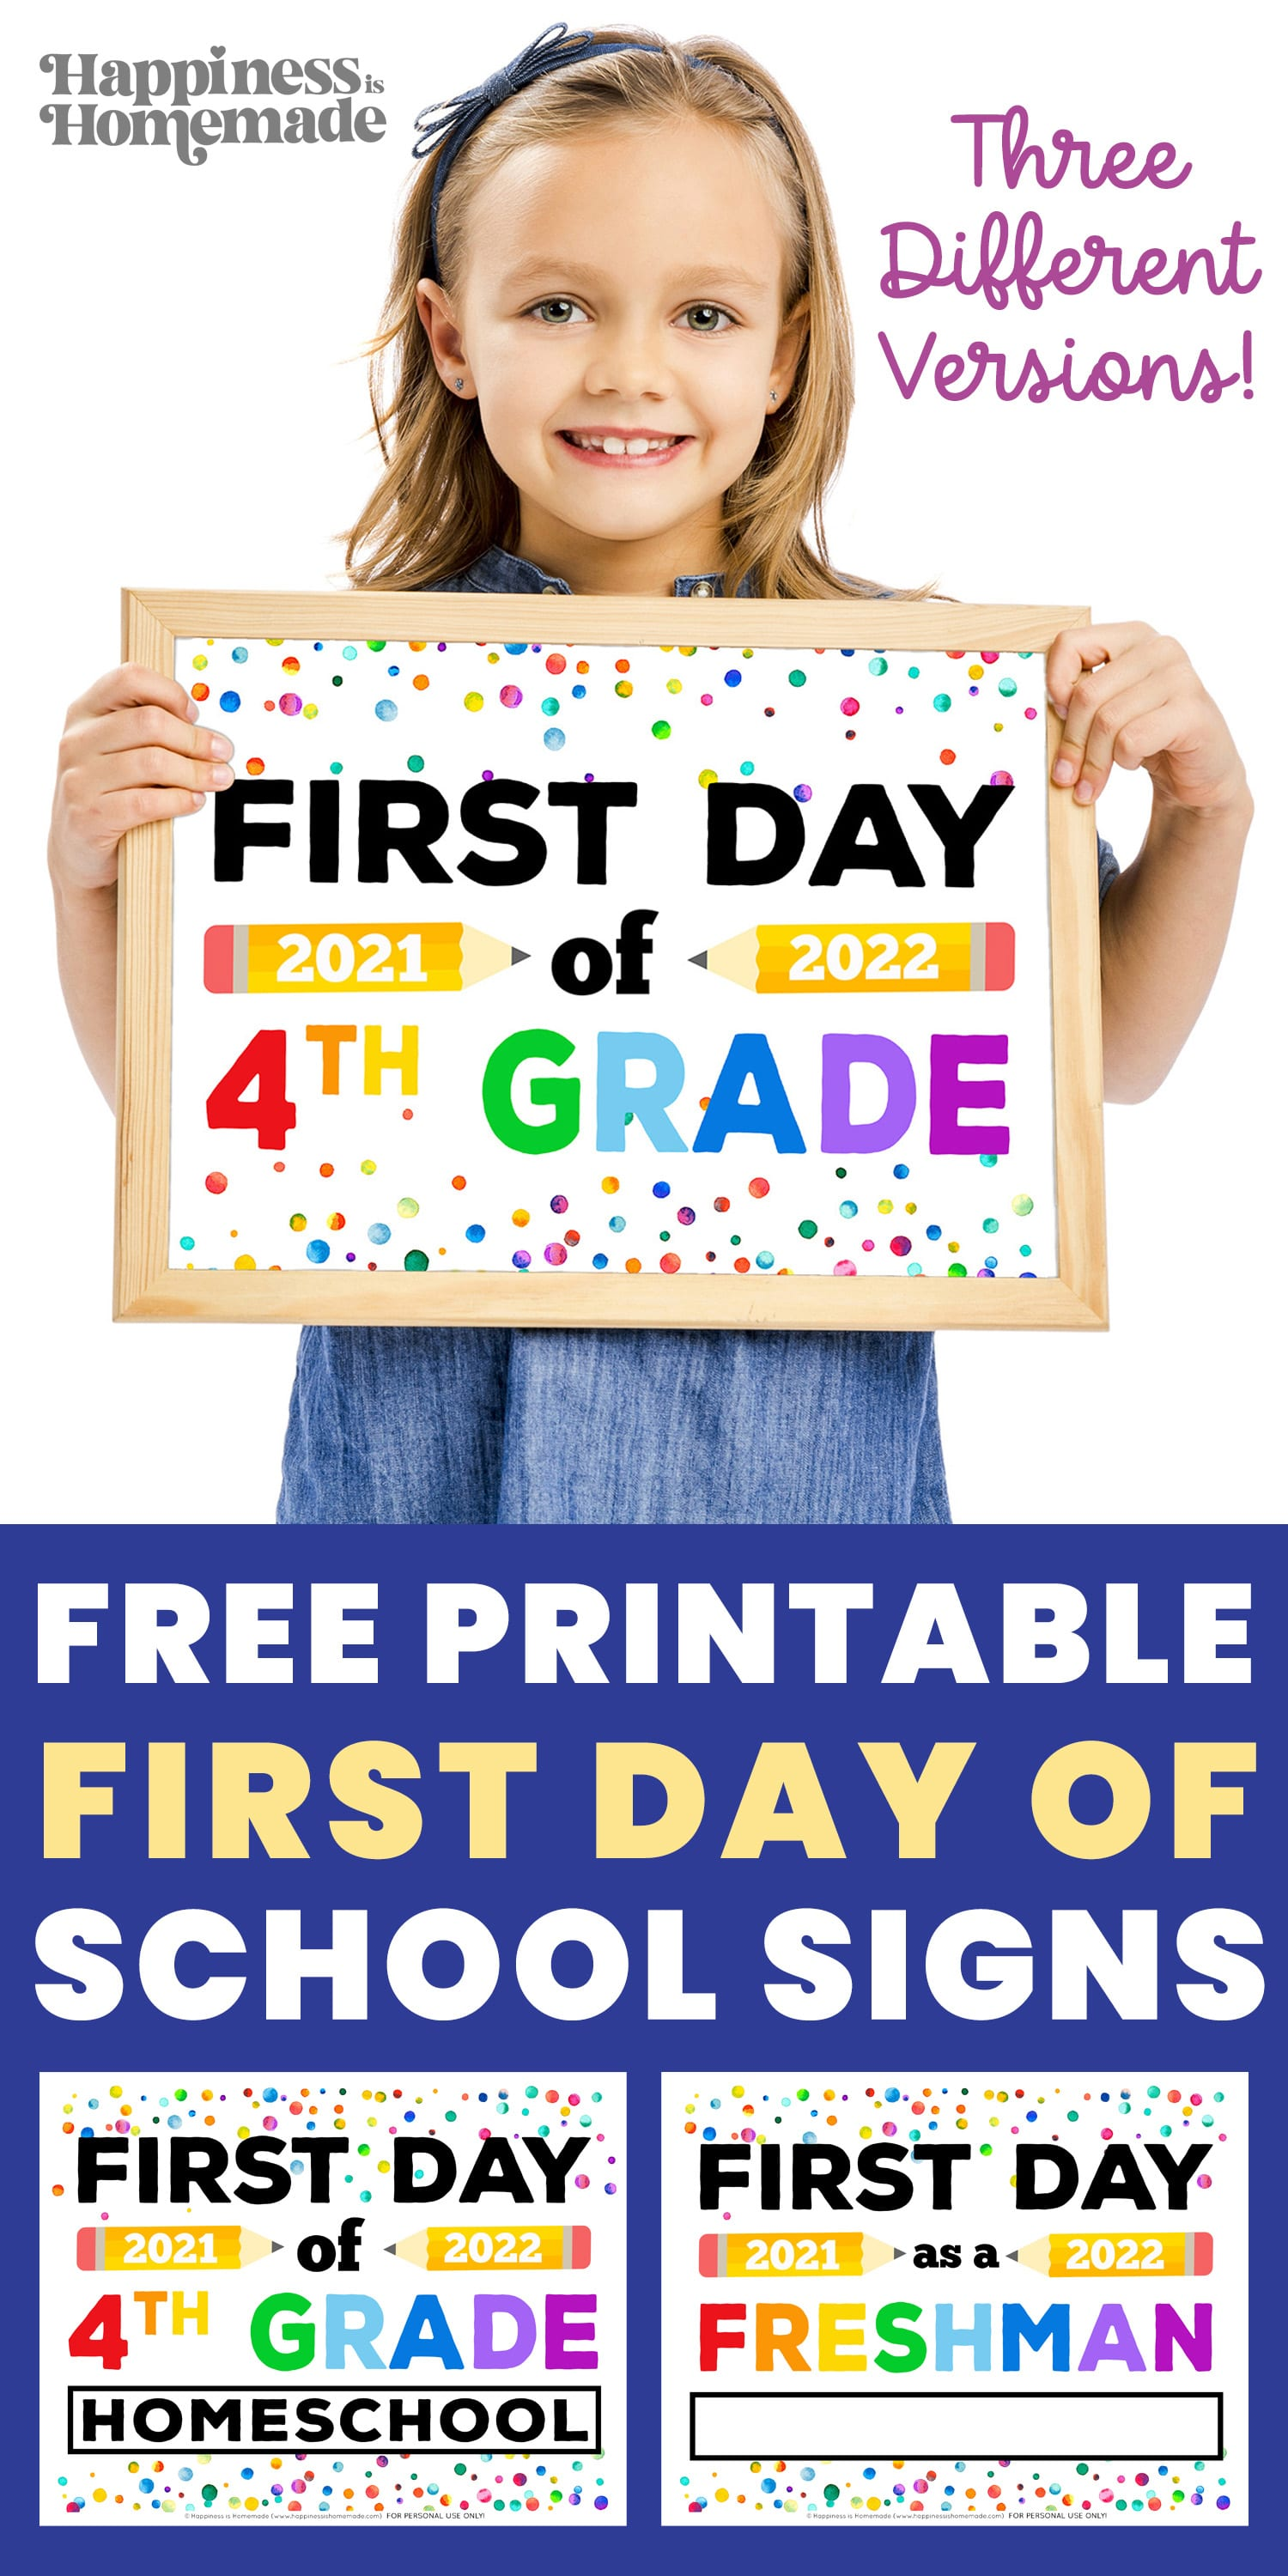 Graphic of Free Printable First Day of School Signs 2021 - 3 Different Versions Available